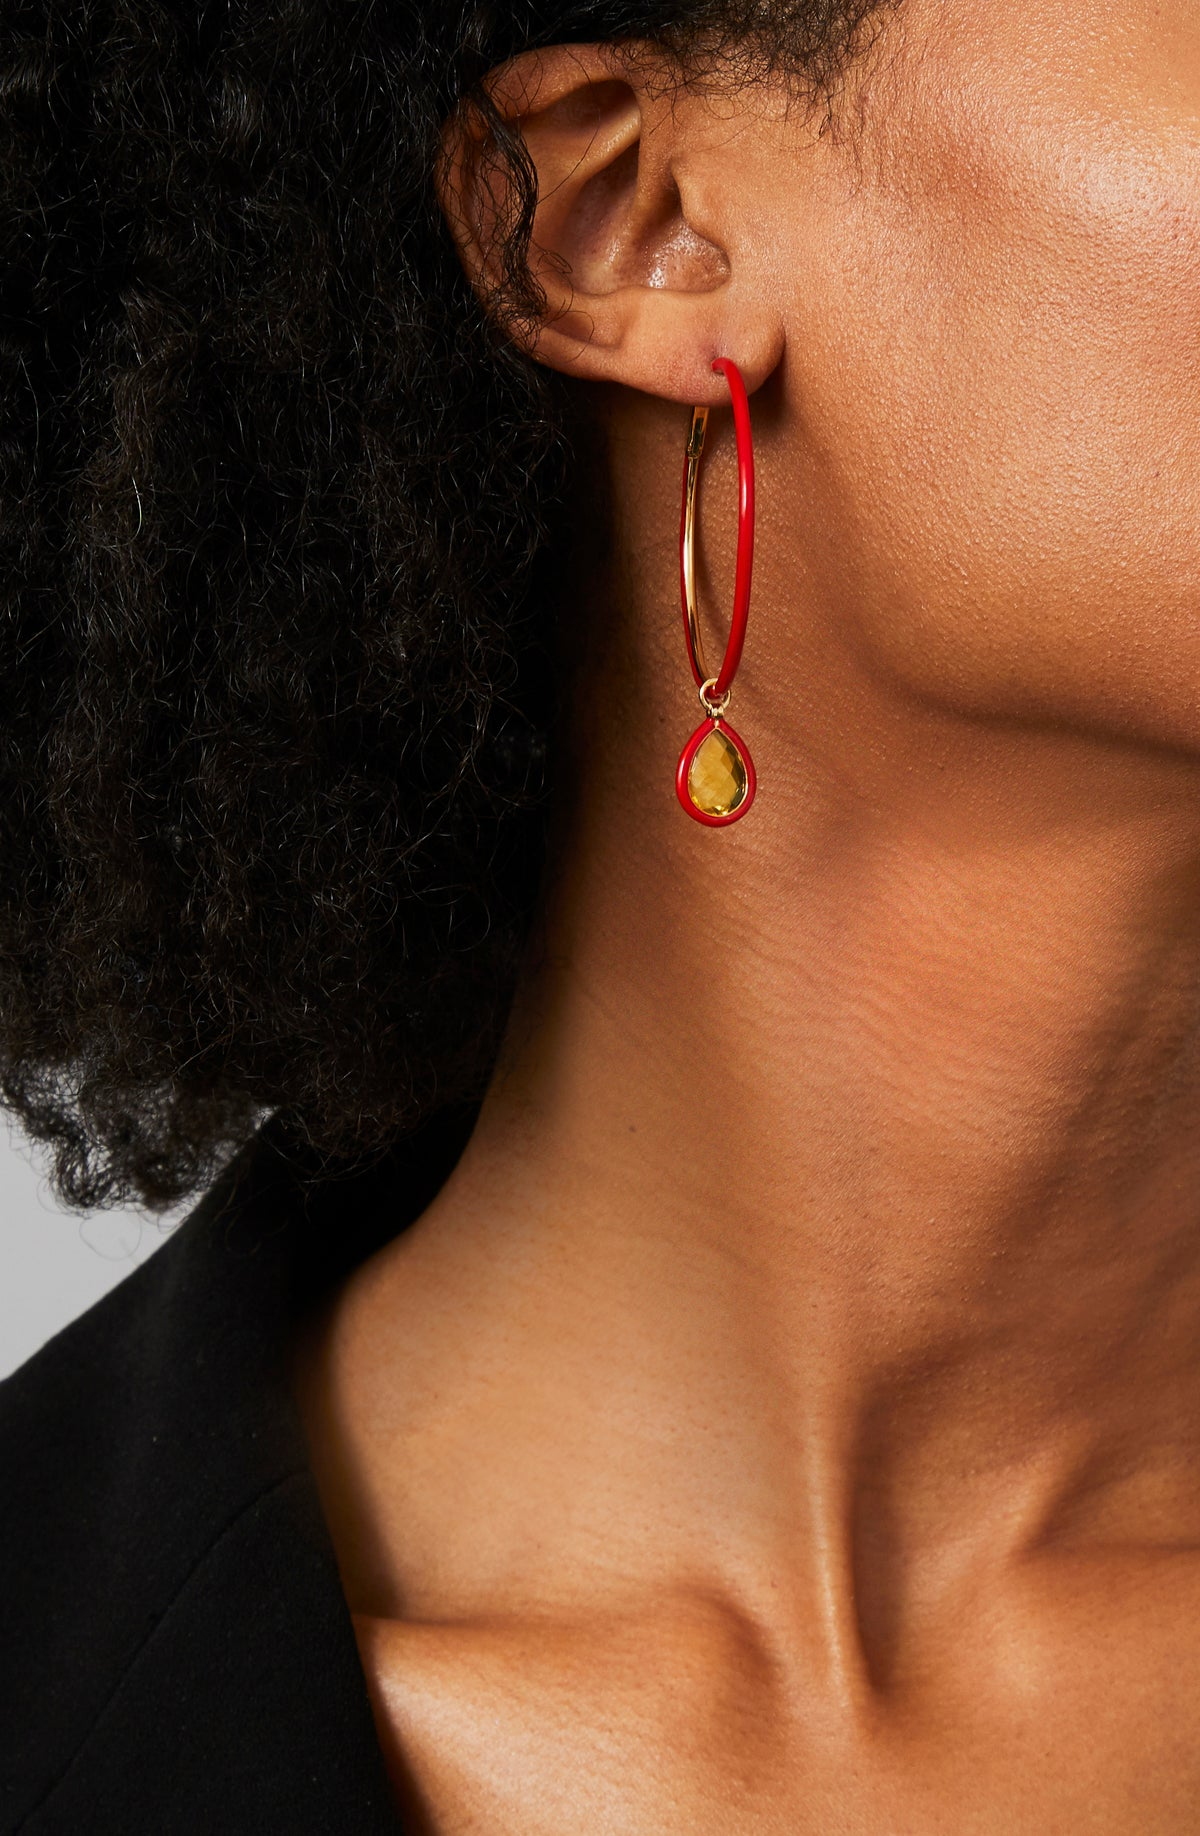 The Artist Medium Enamel Hoops In Red